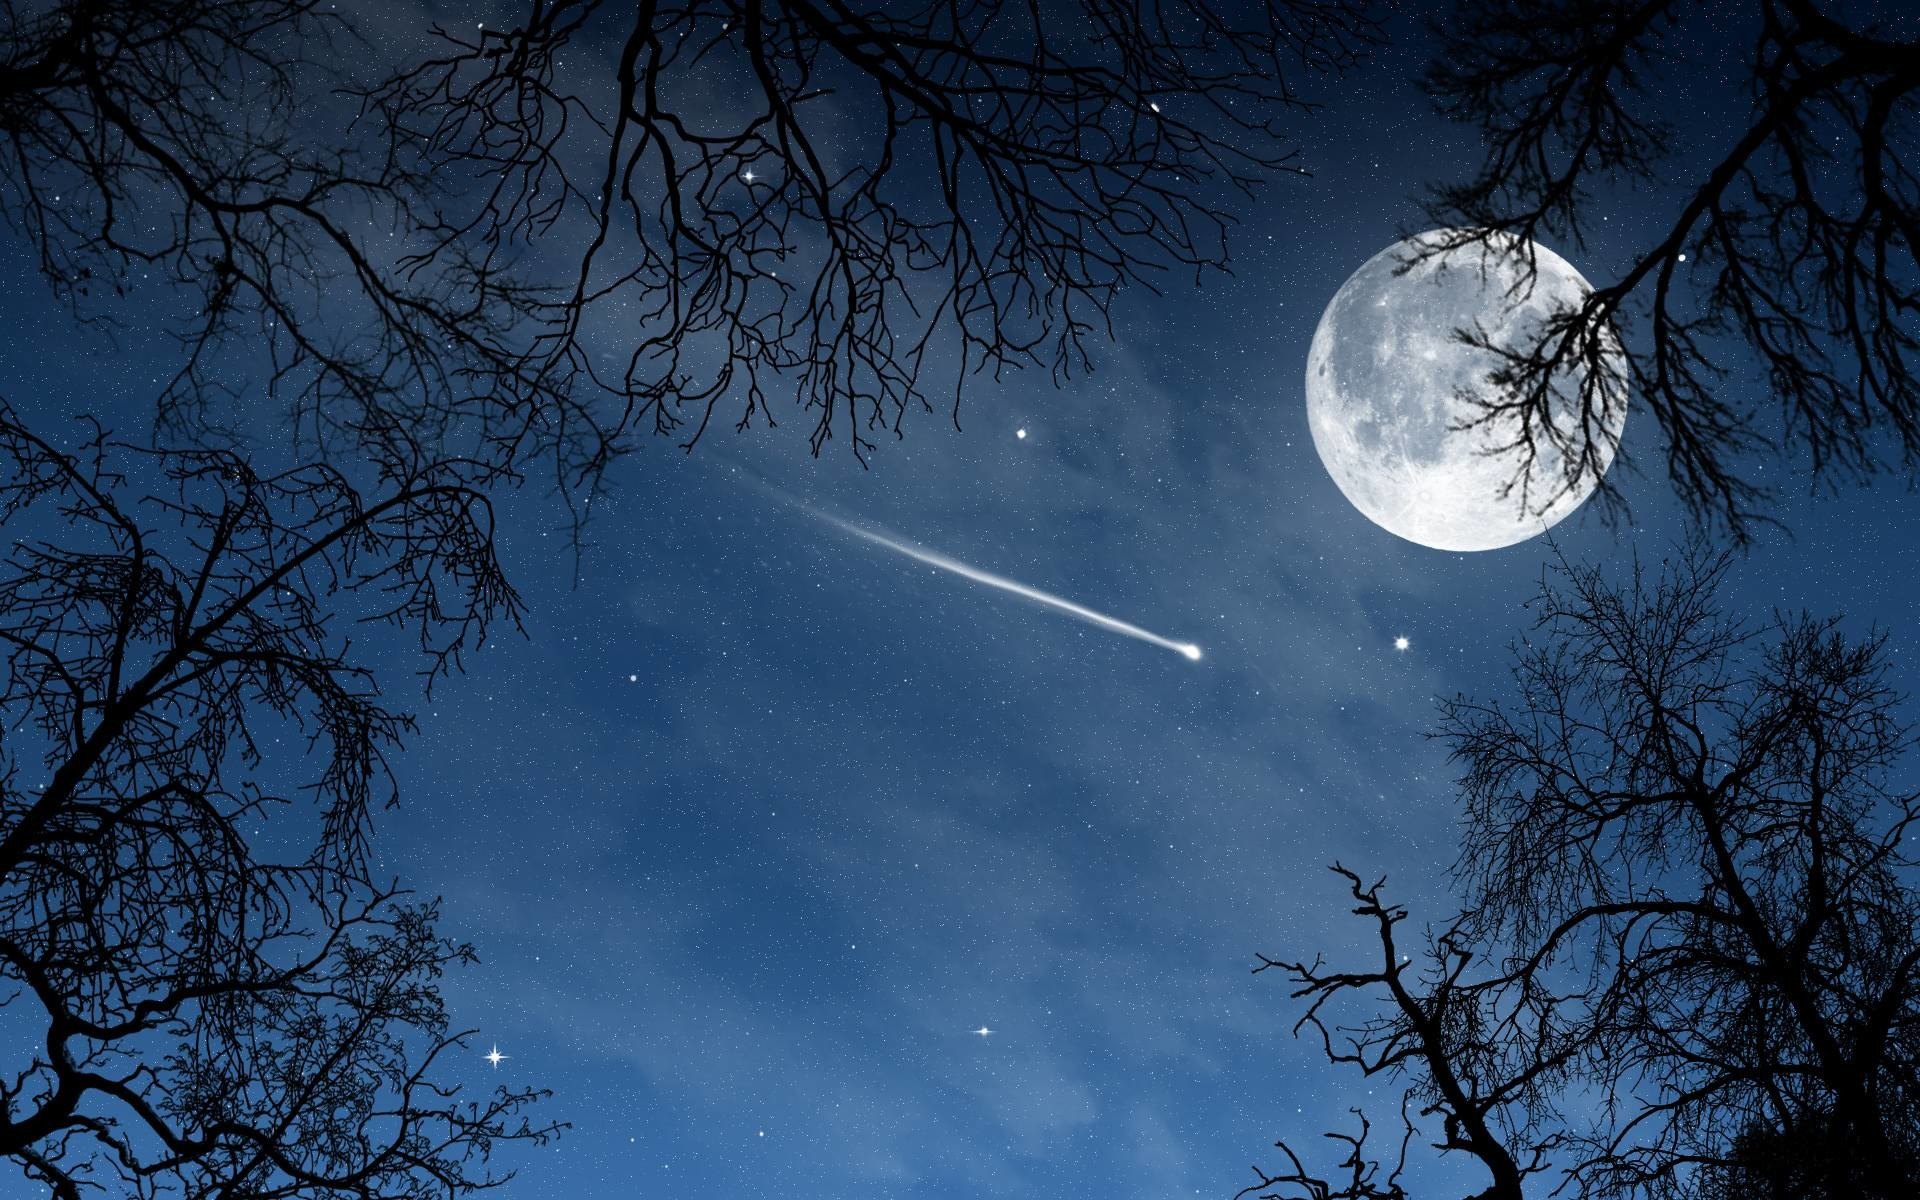 Moon and Stars, Beautiful night sky with full moon, stars and a .